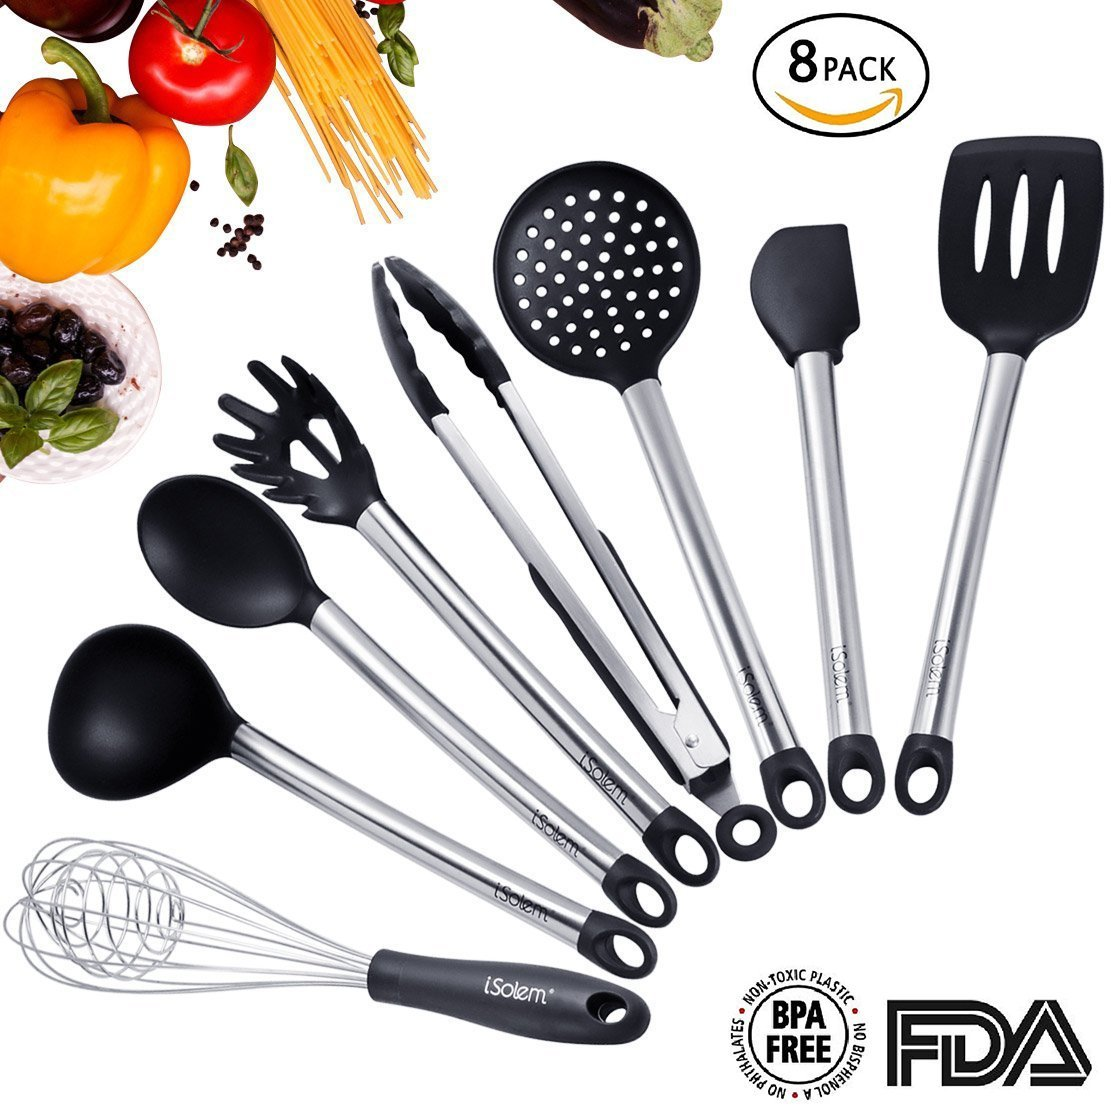 Silicone Kitchen Utensils, ISolem 8 Pieces Cooking Utensils Set